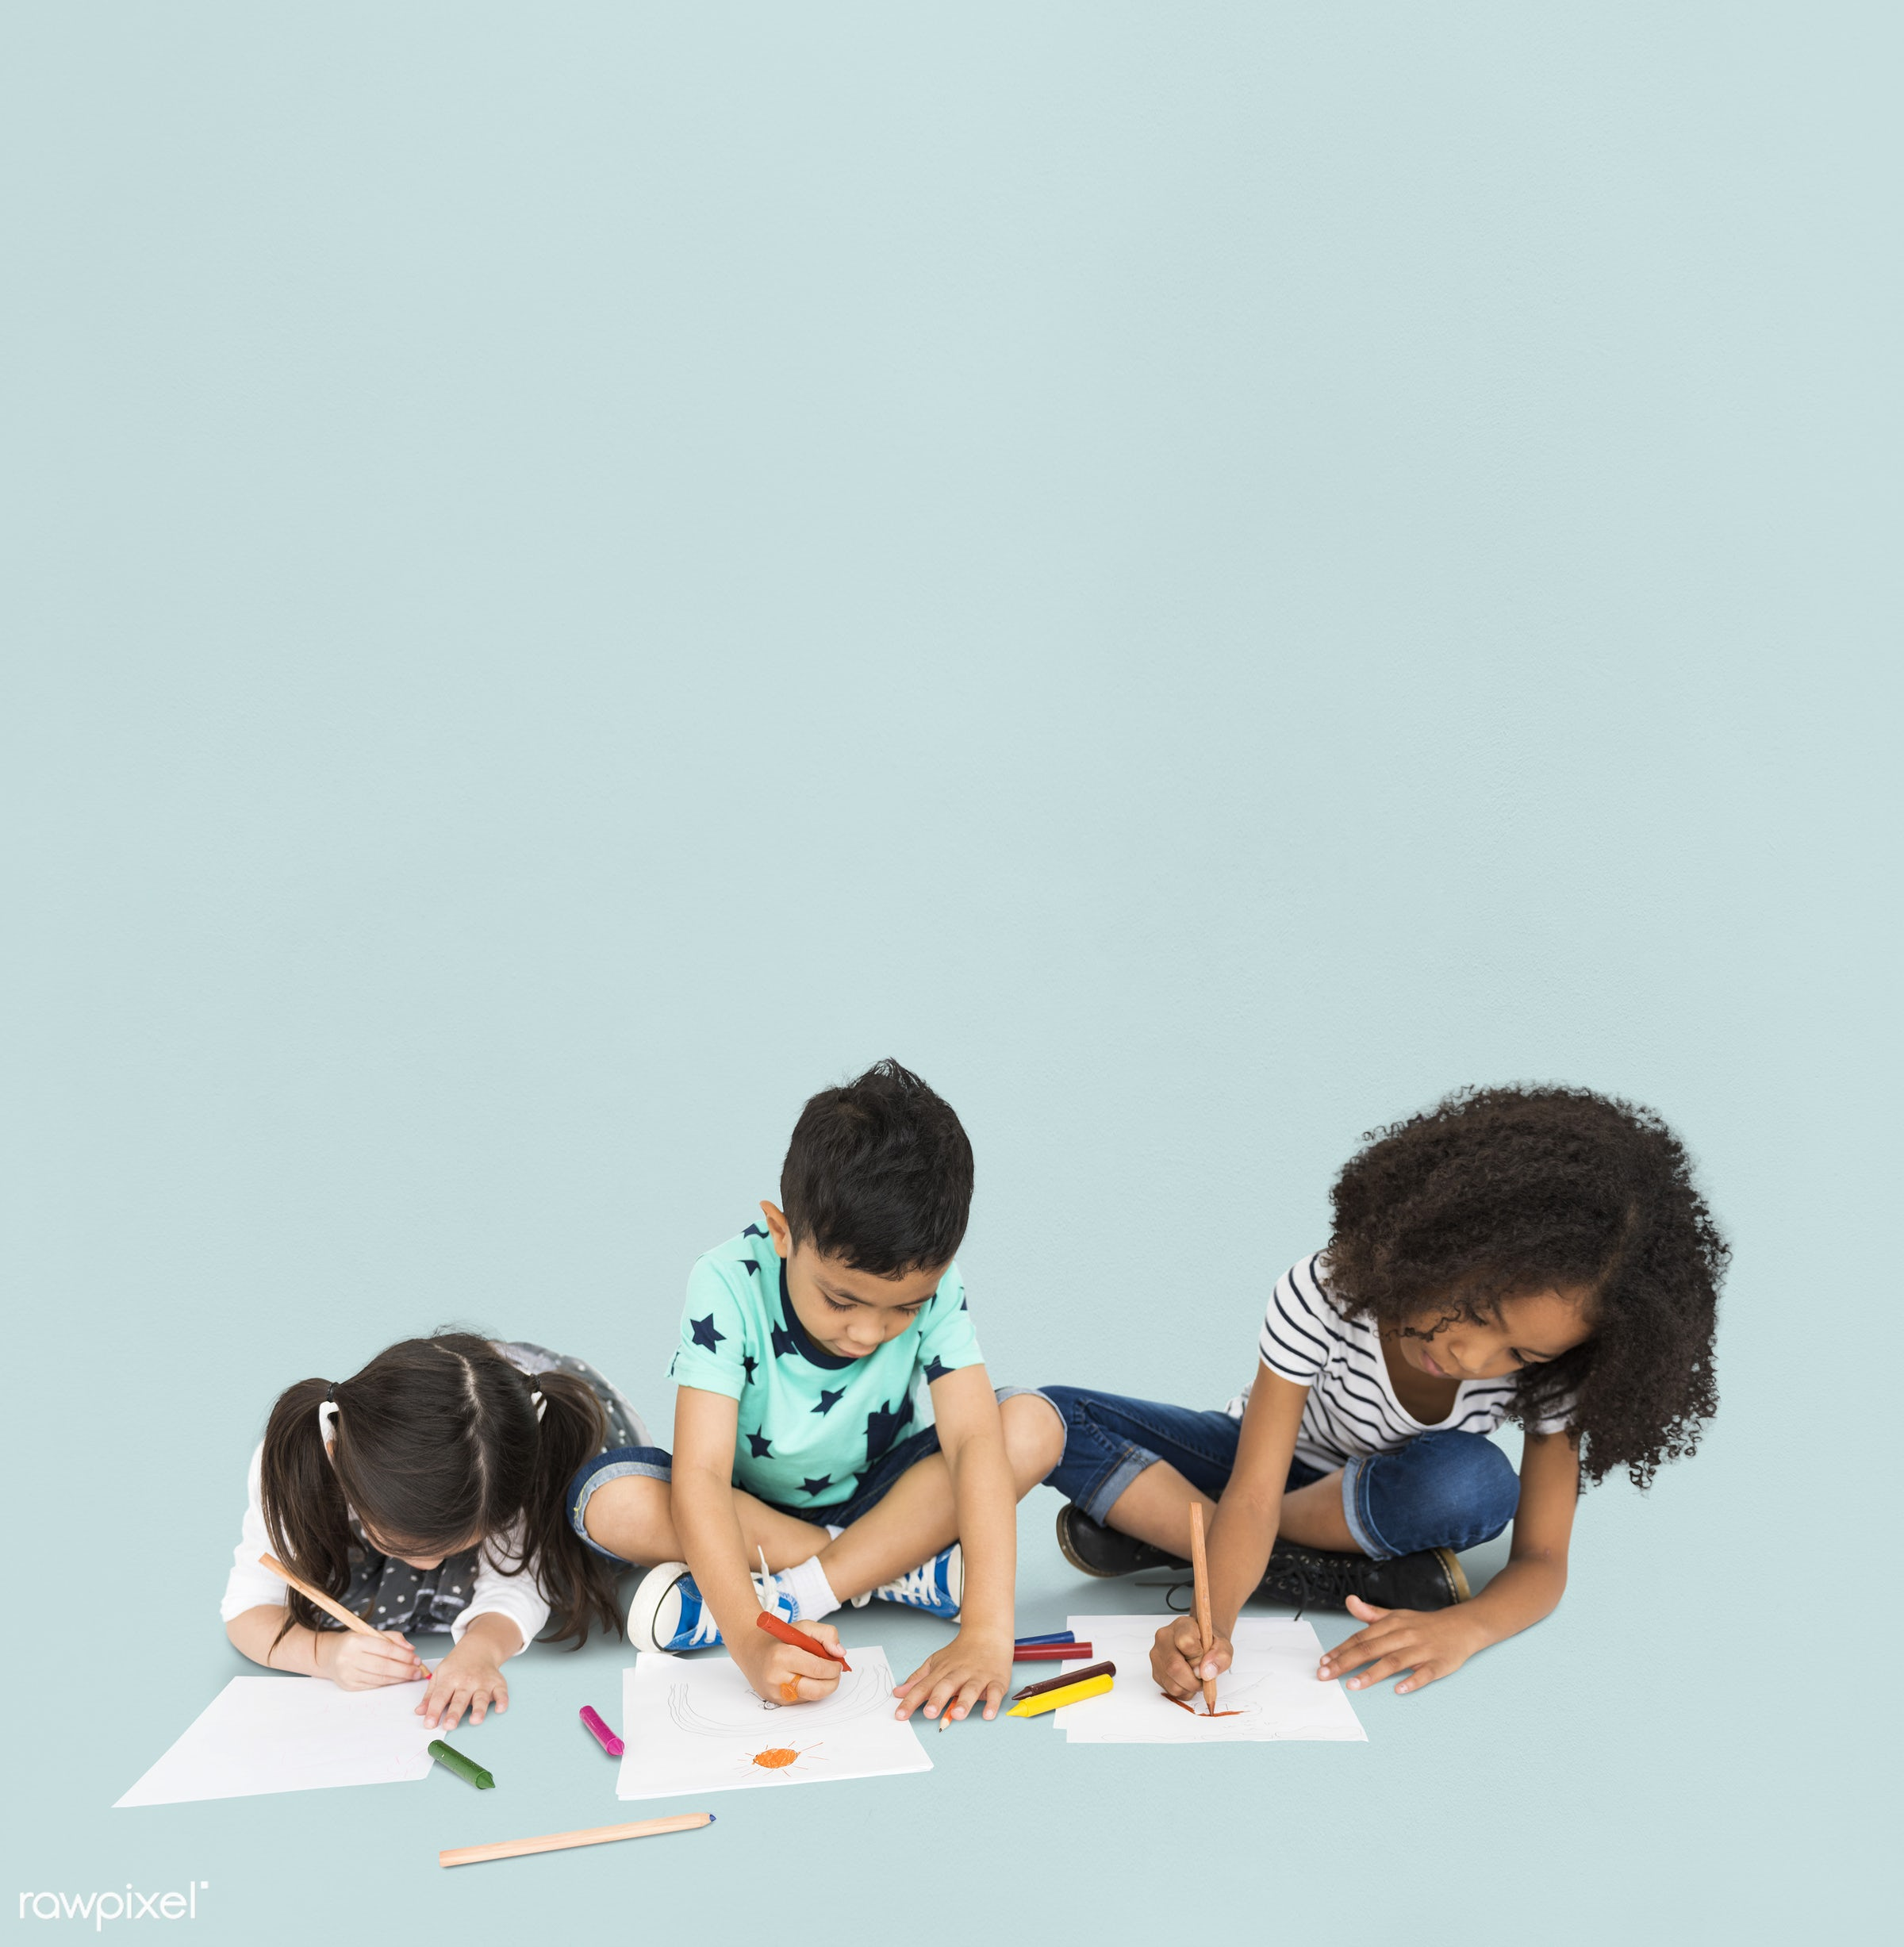 expression, studio, person, diverse, children, little, creativity, people, together, drawing, draw, pose, friends, sketching...